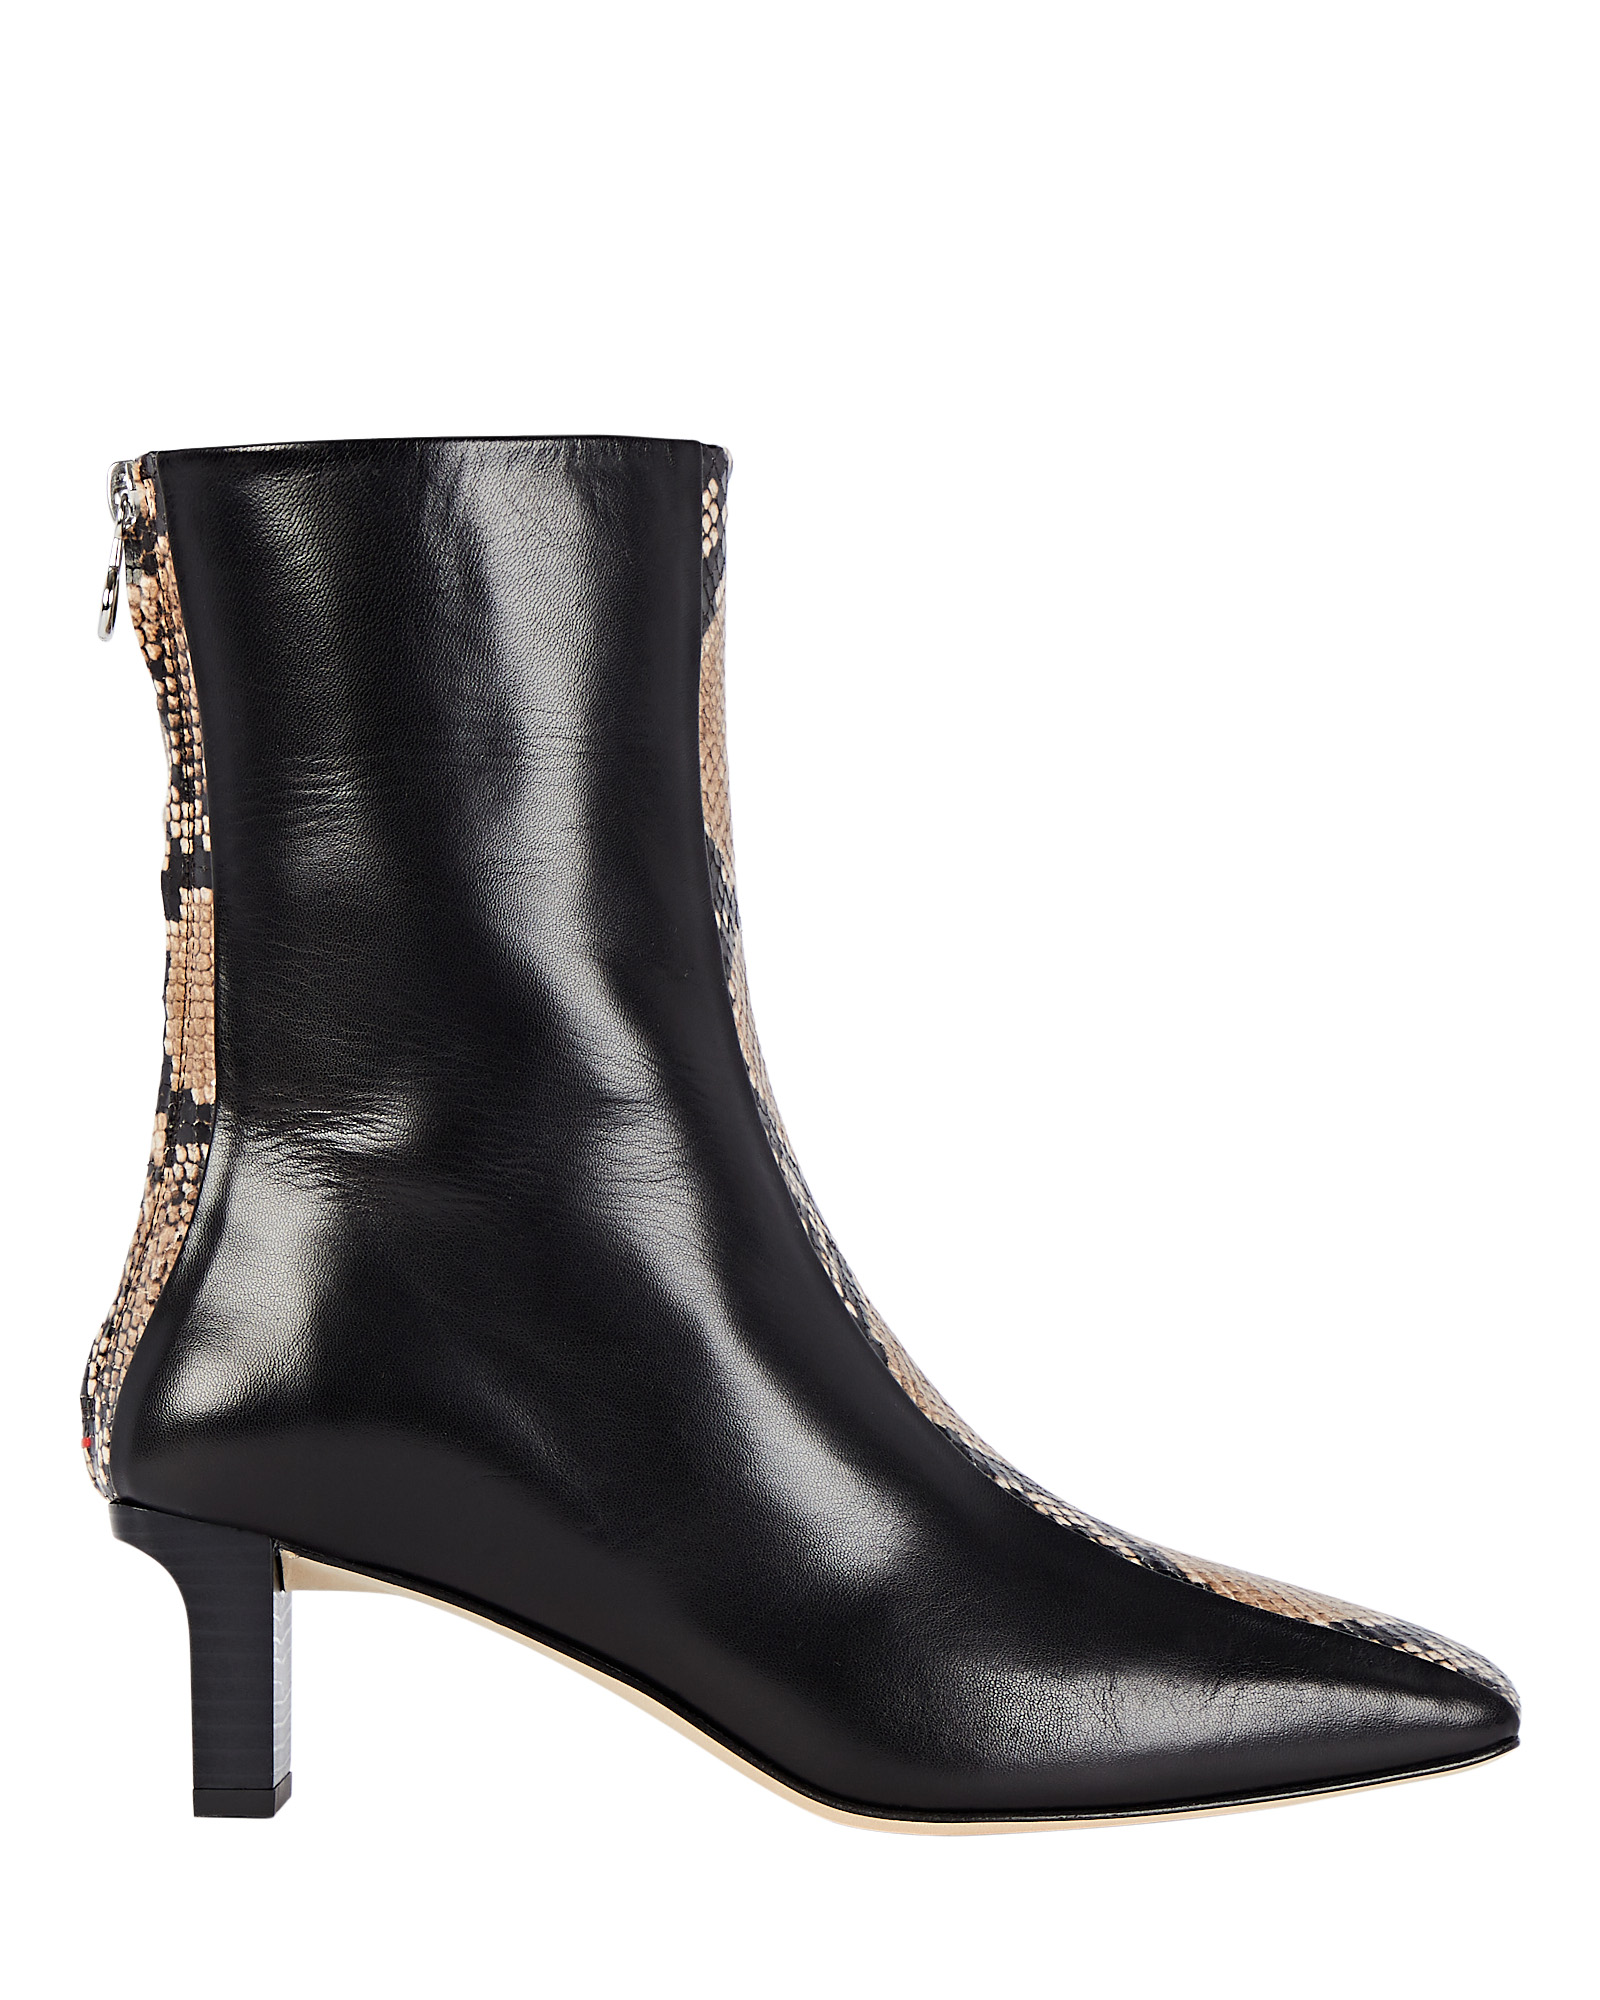 Aeyde AEYDE MOLLY LEATHER ANKLE BOOTIES